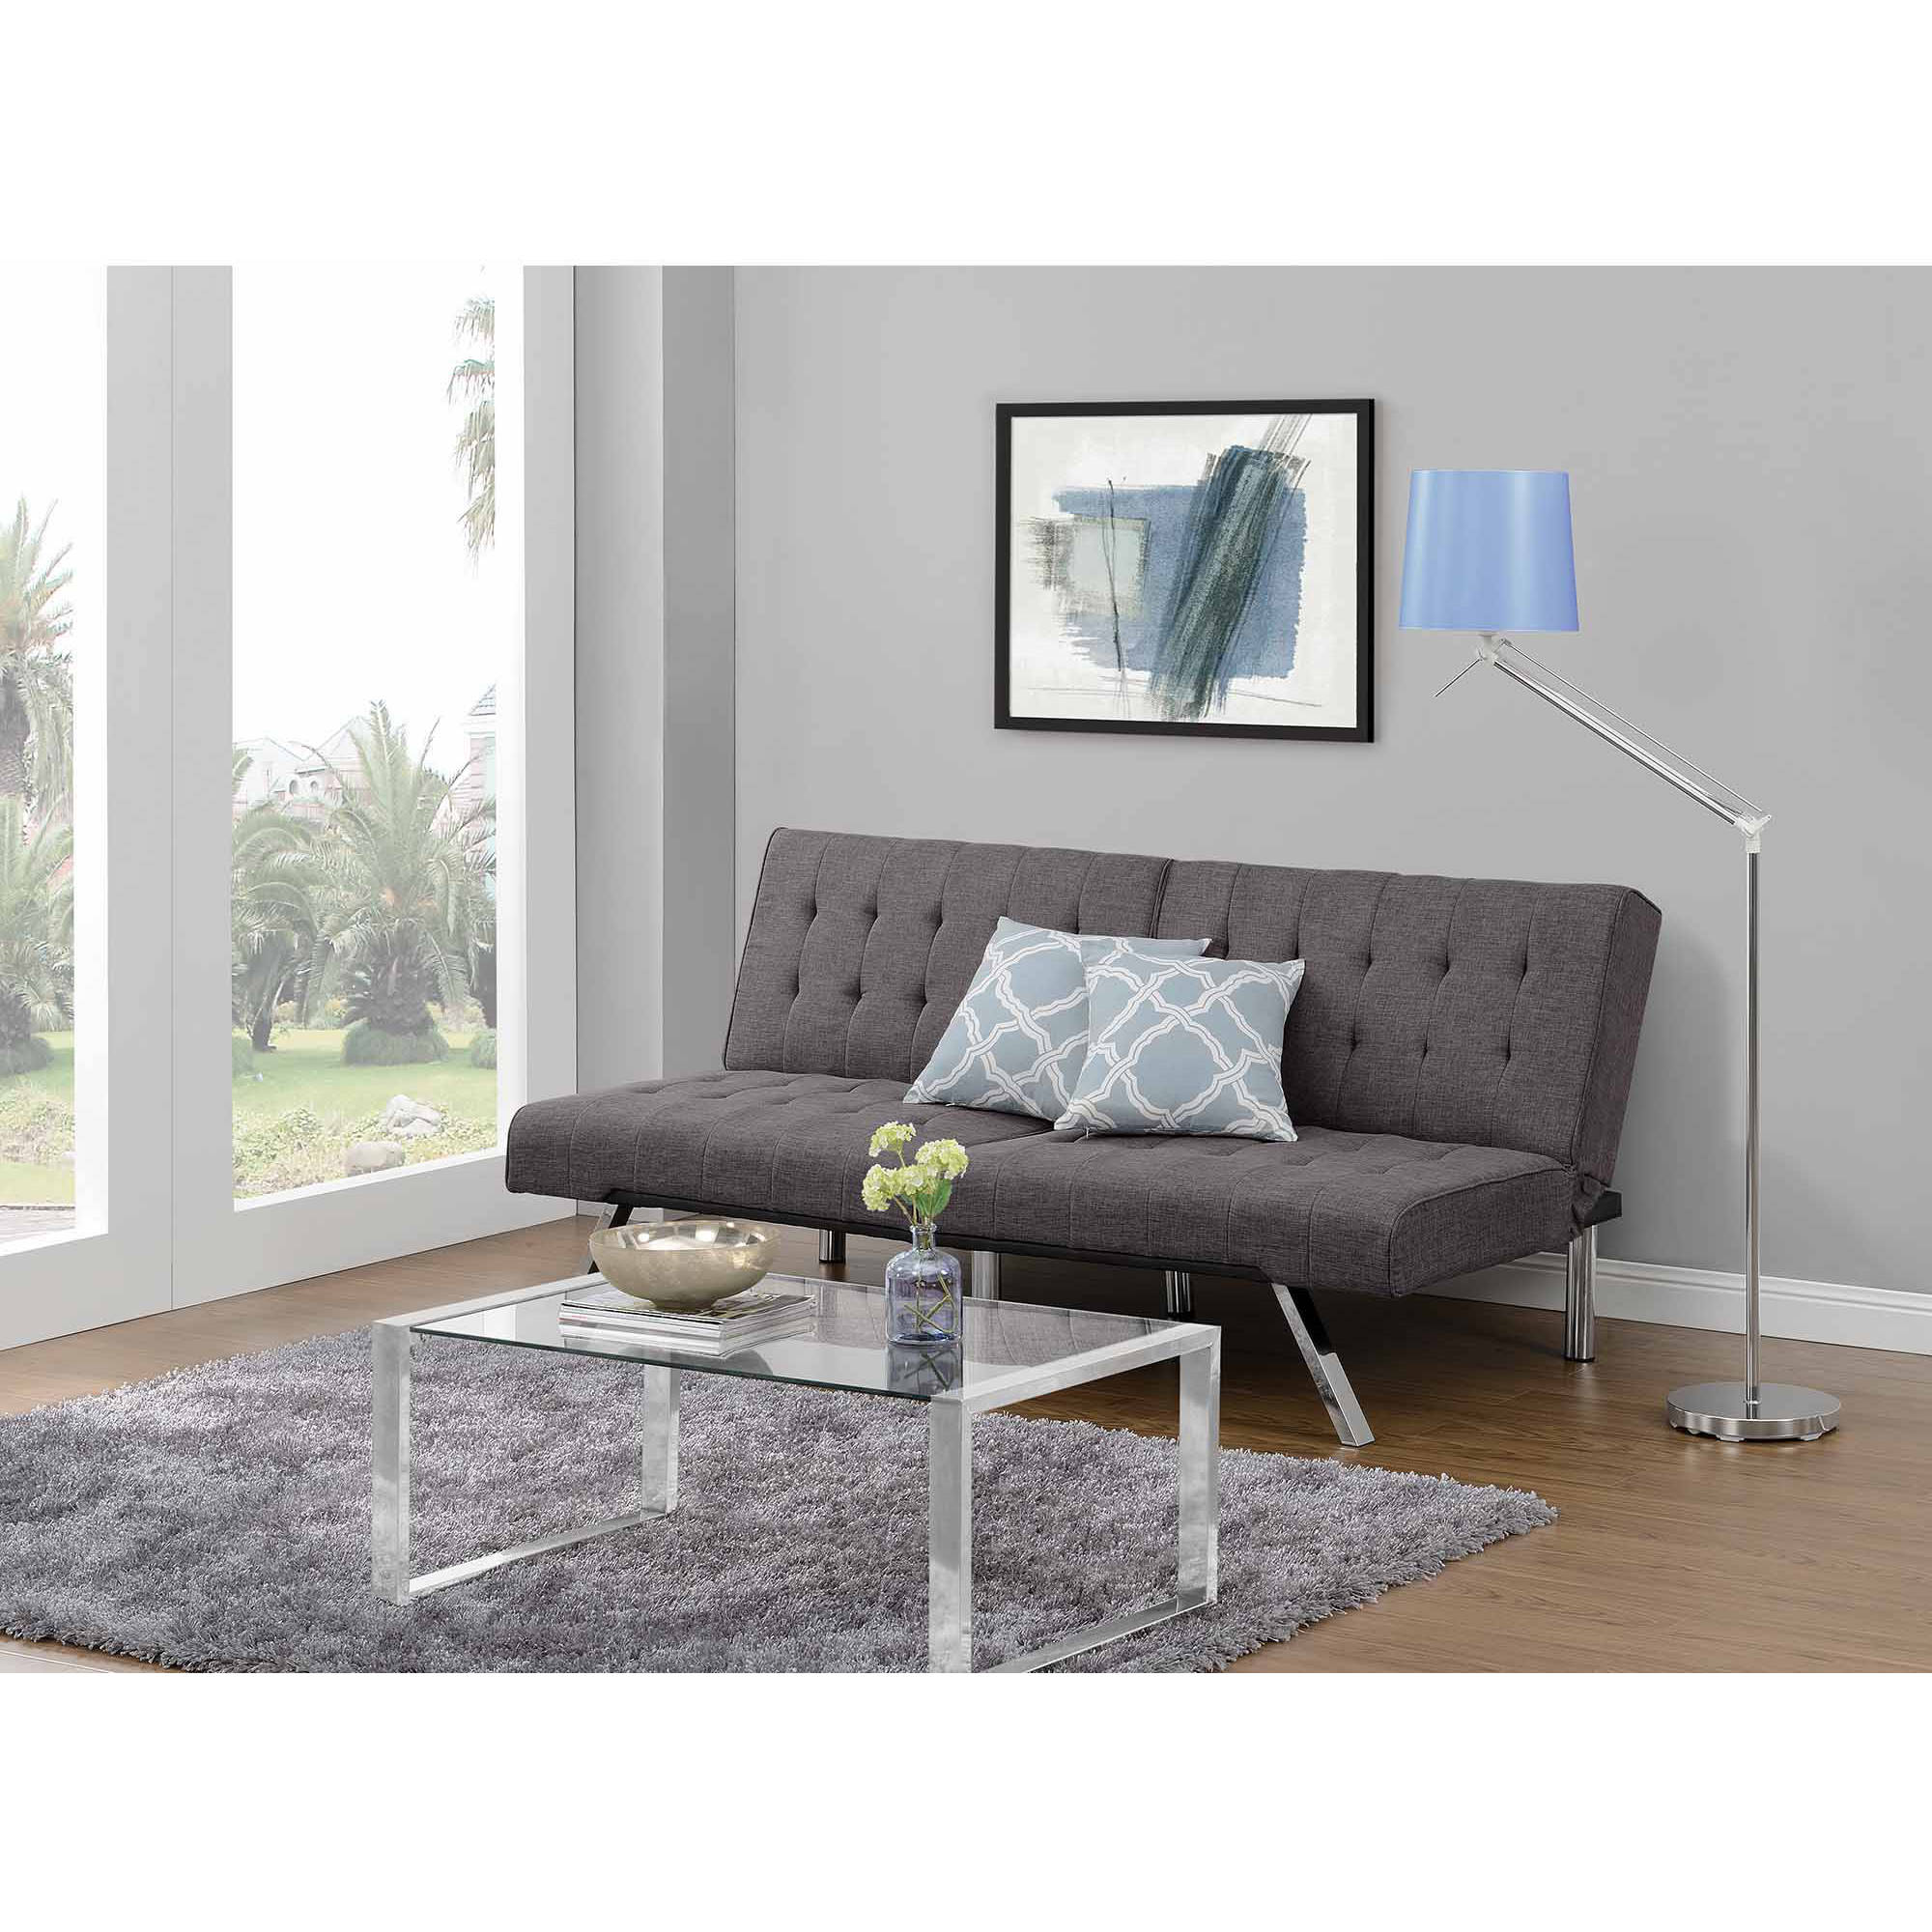 Sauder Deshler Convertible Sofa Bed, Multiple Colors - Walmart.com